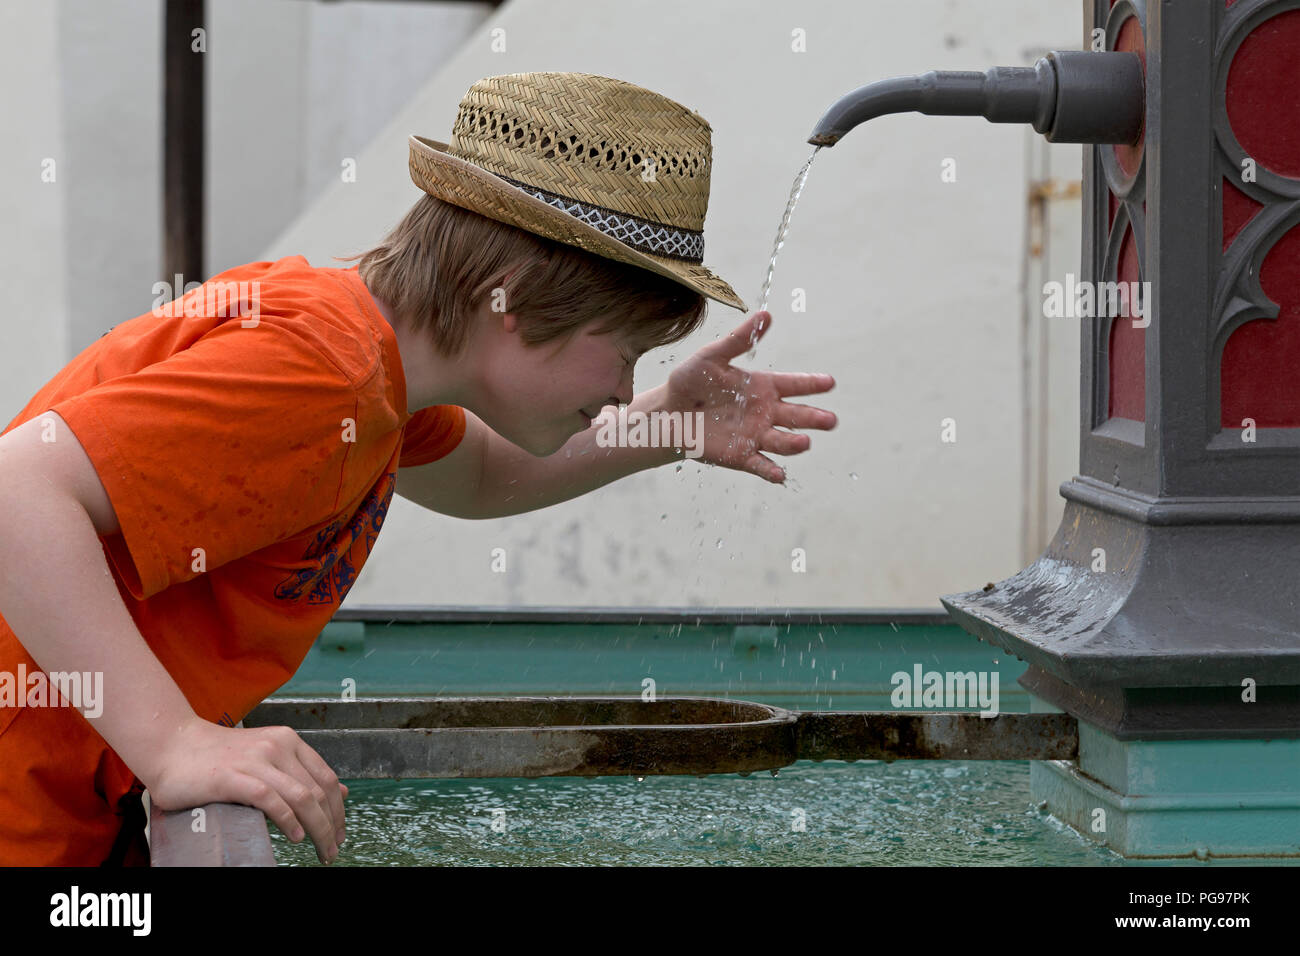 boy refreshing himself at a fountain, old town, Wangen, Allgaeu, Baden-Wuerttemberg, Germany - Stock Image